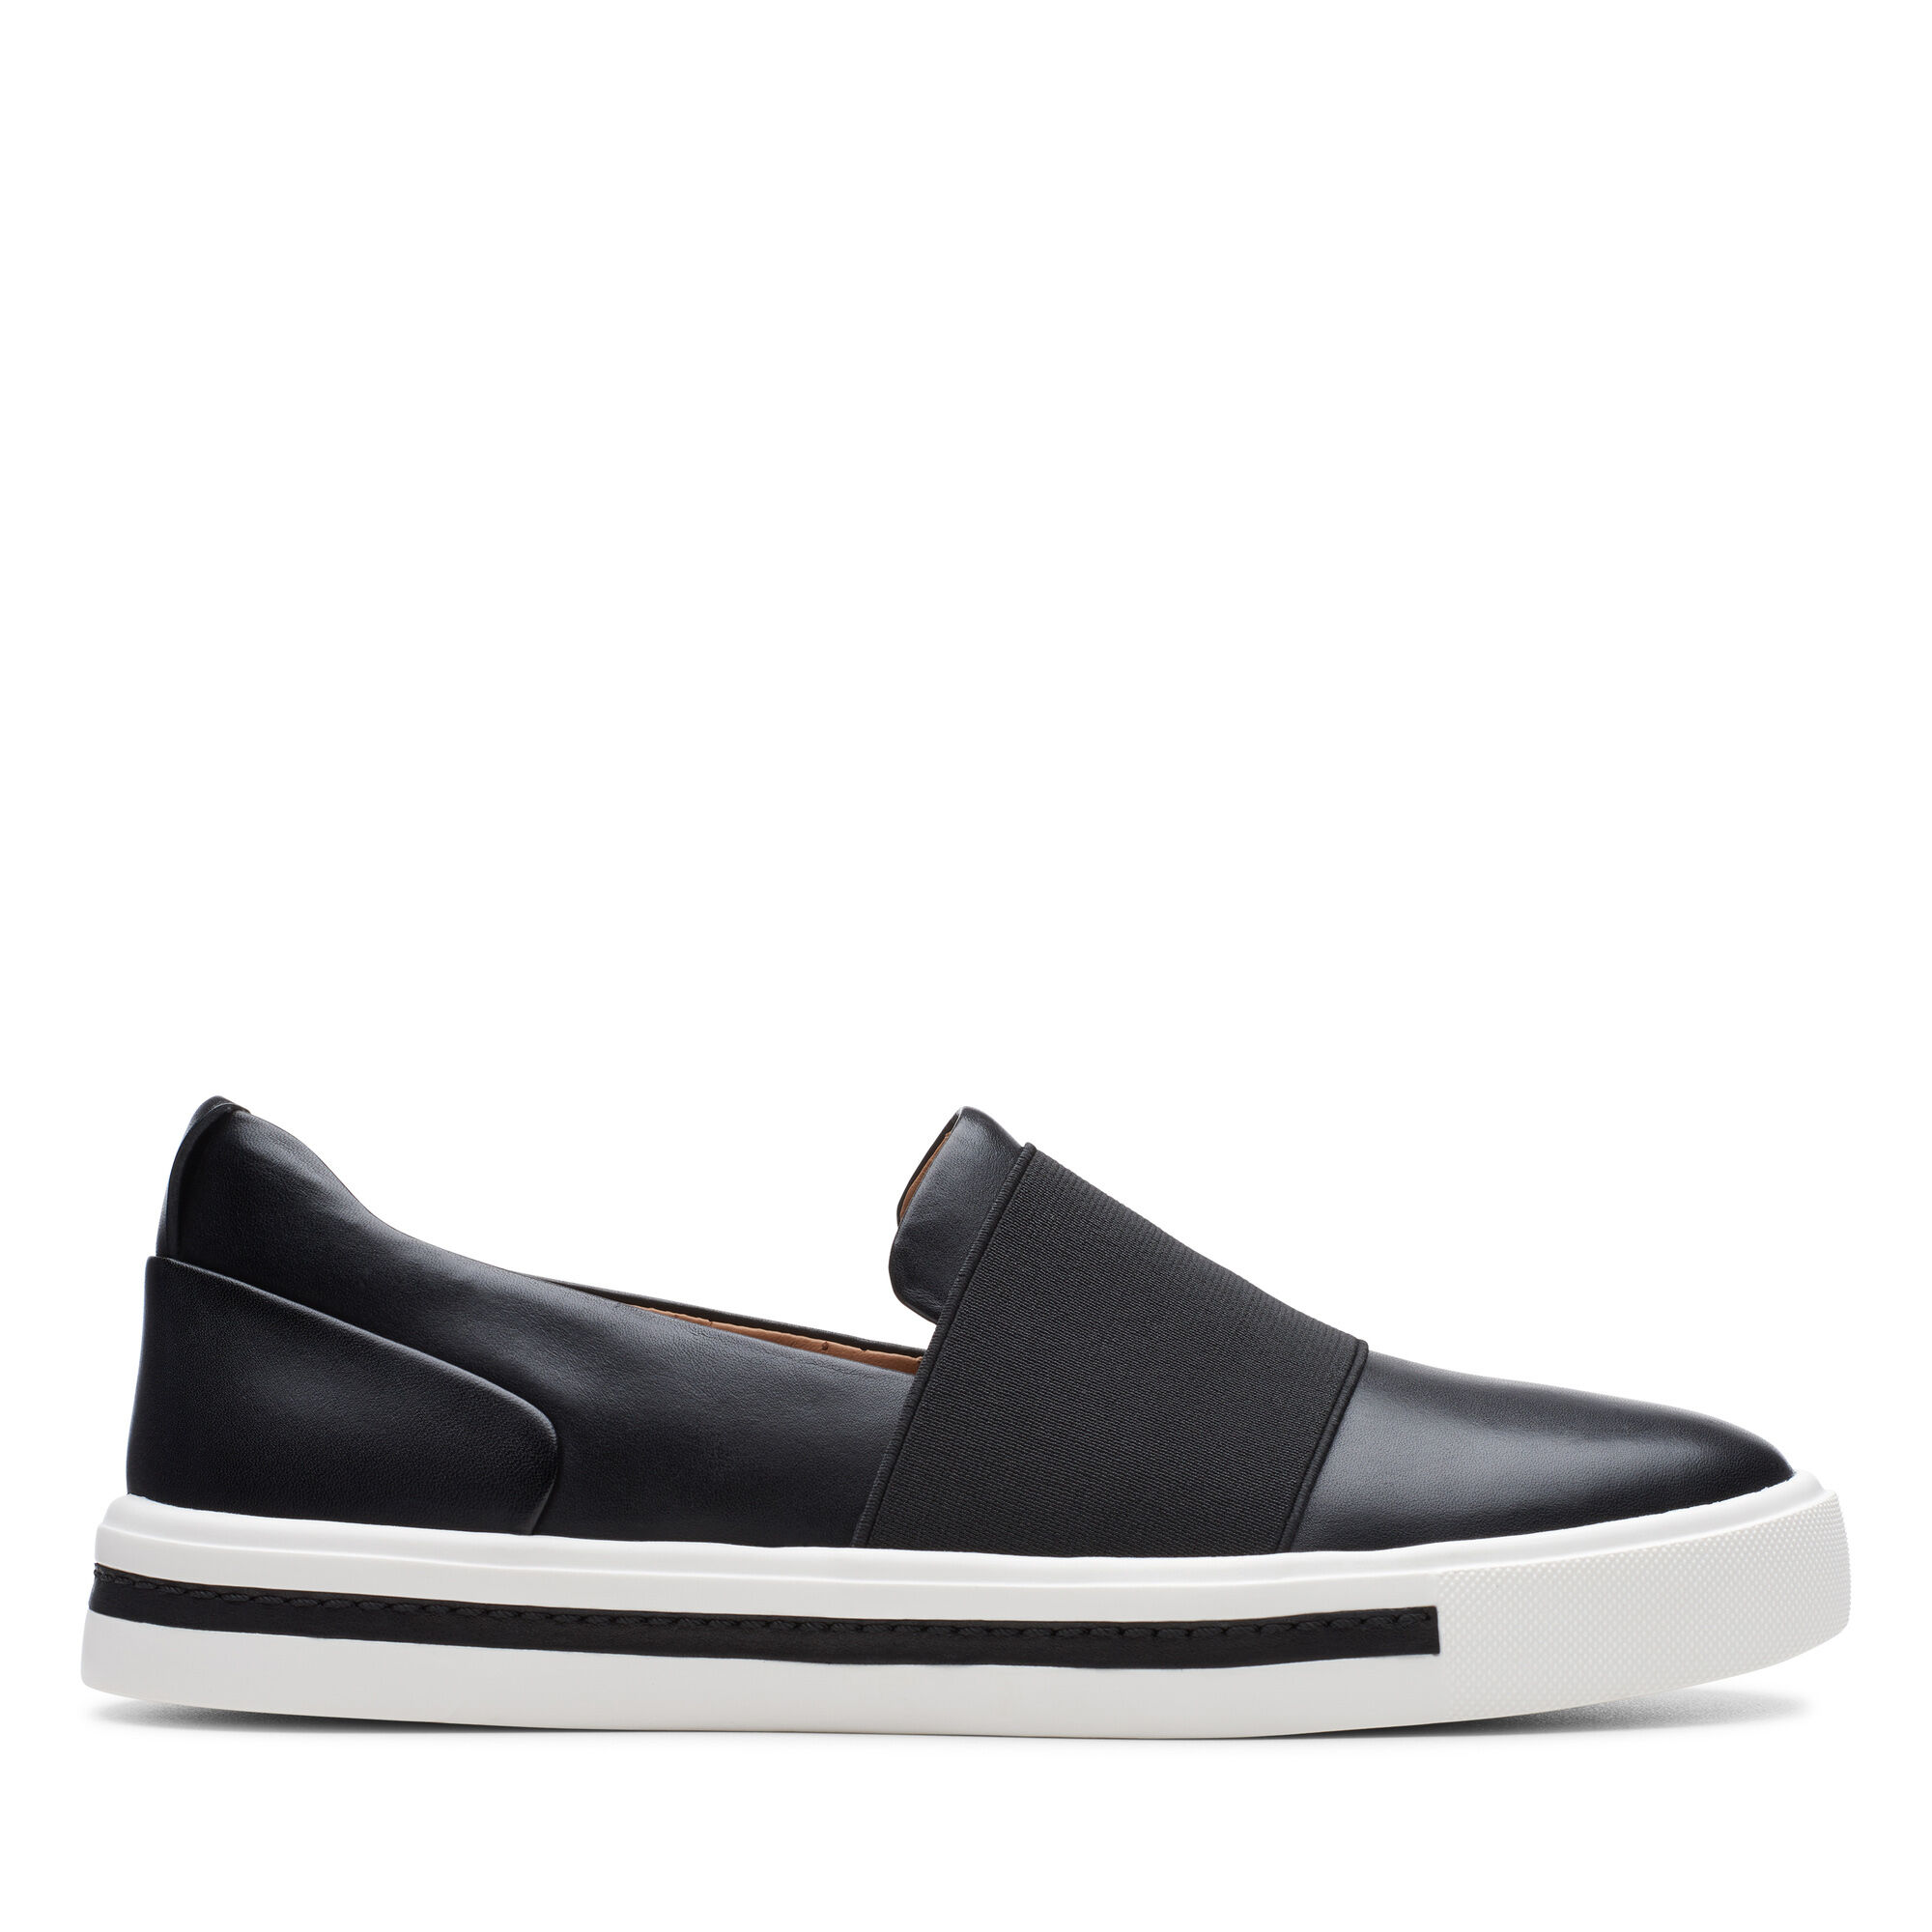 Leather Sneakers - Un Maui Step   Clarks